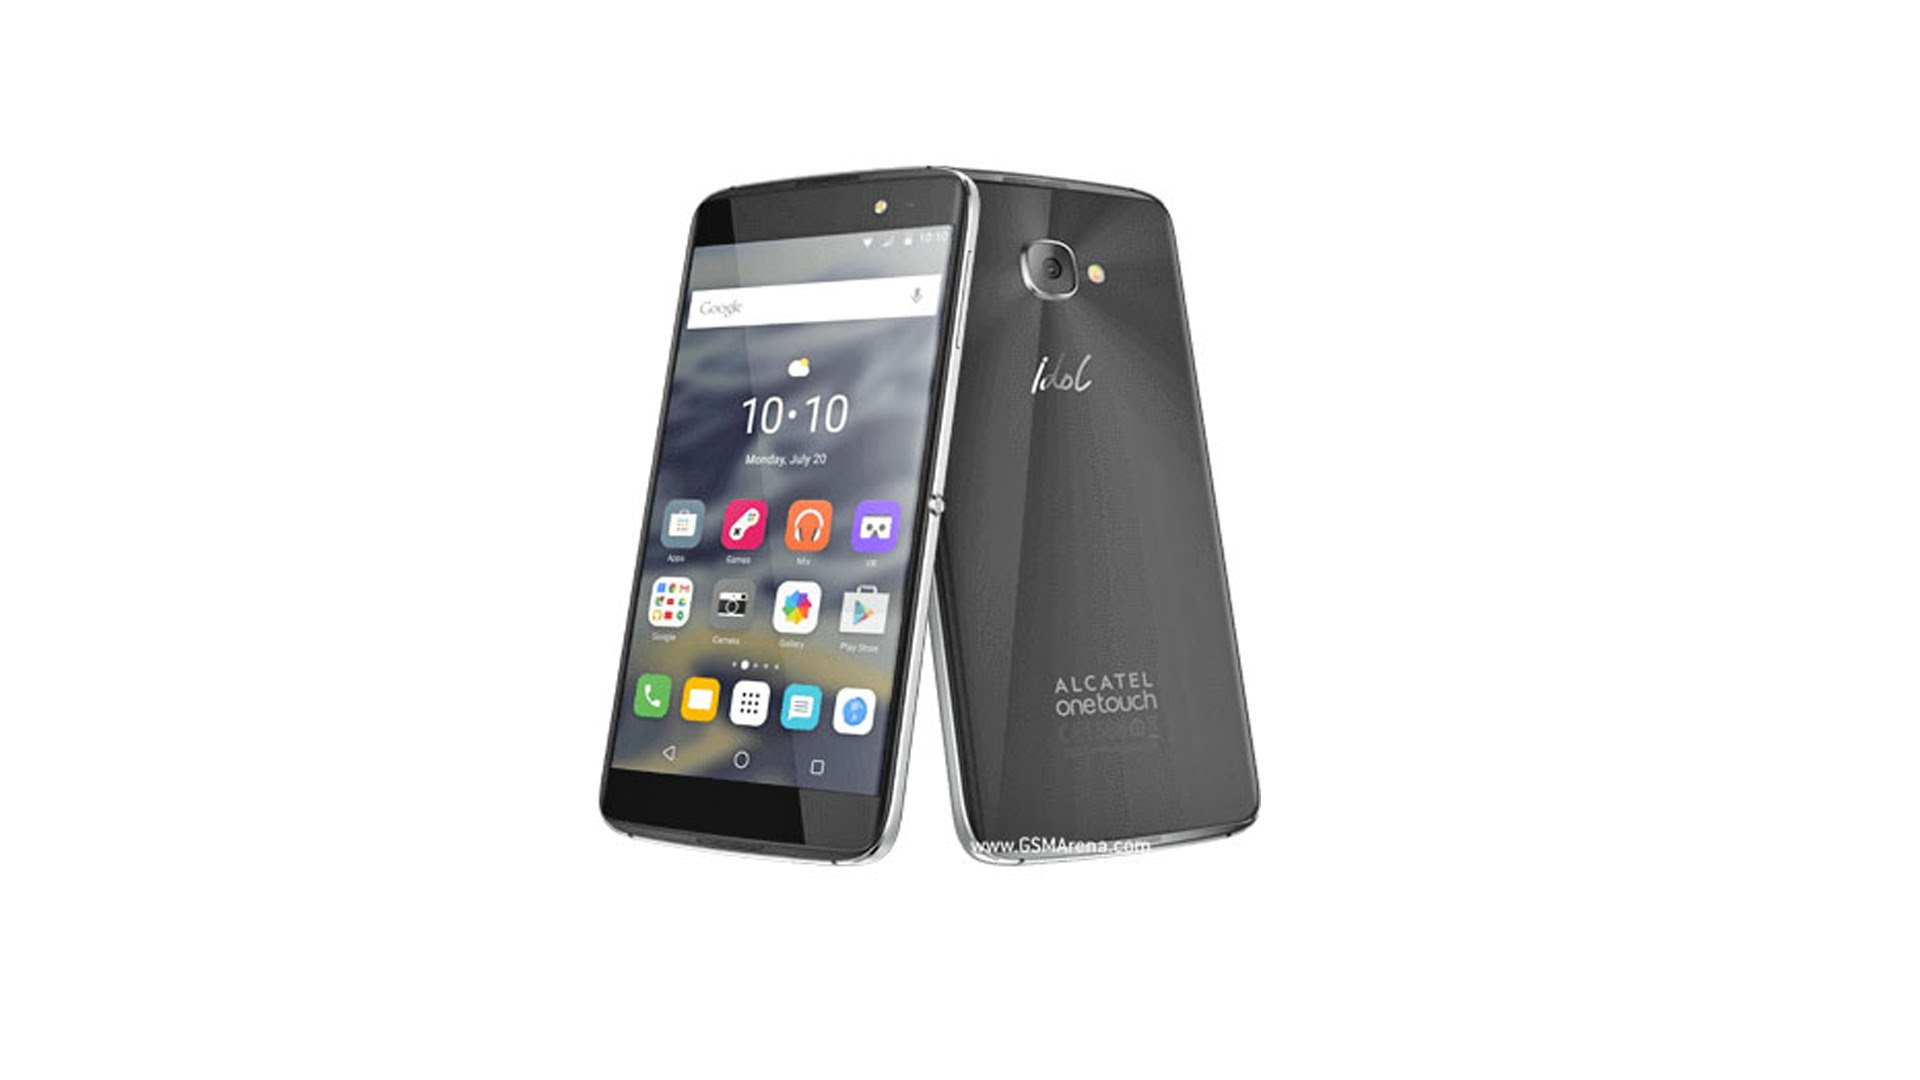 Alcatel one touch idol 3 compare tariffs deals amp prices - Alcatel Idol 4s Review